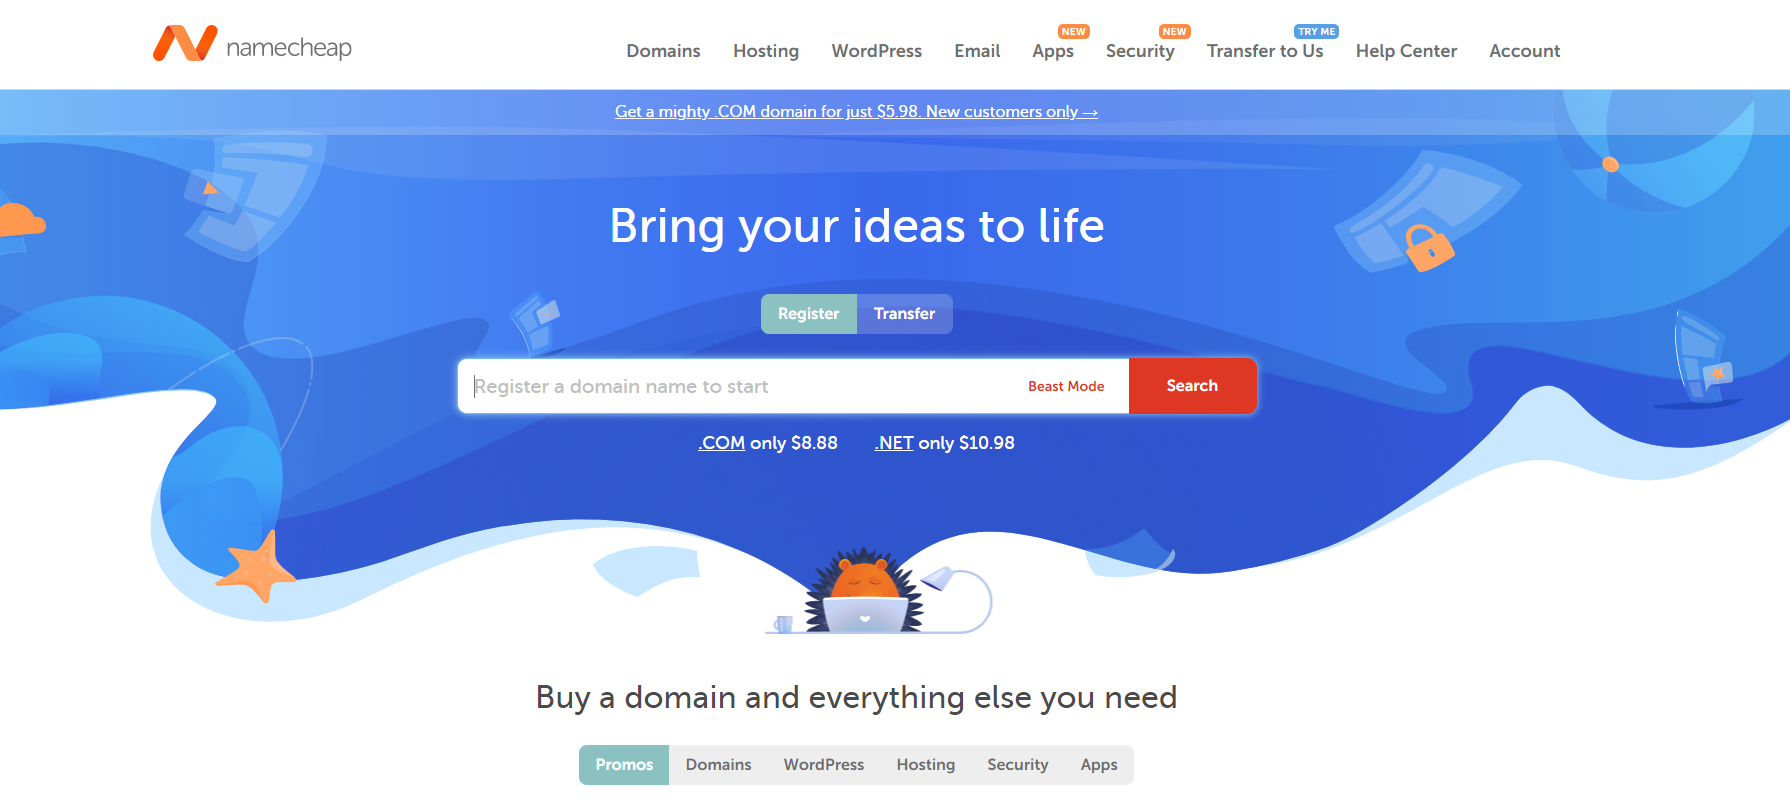 Namecheap - Buy your domain and everything else